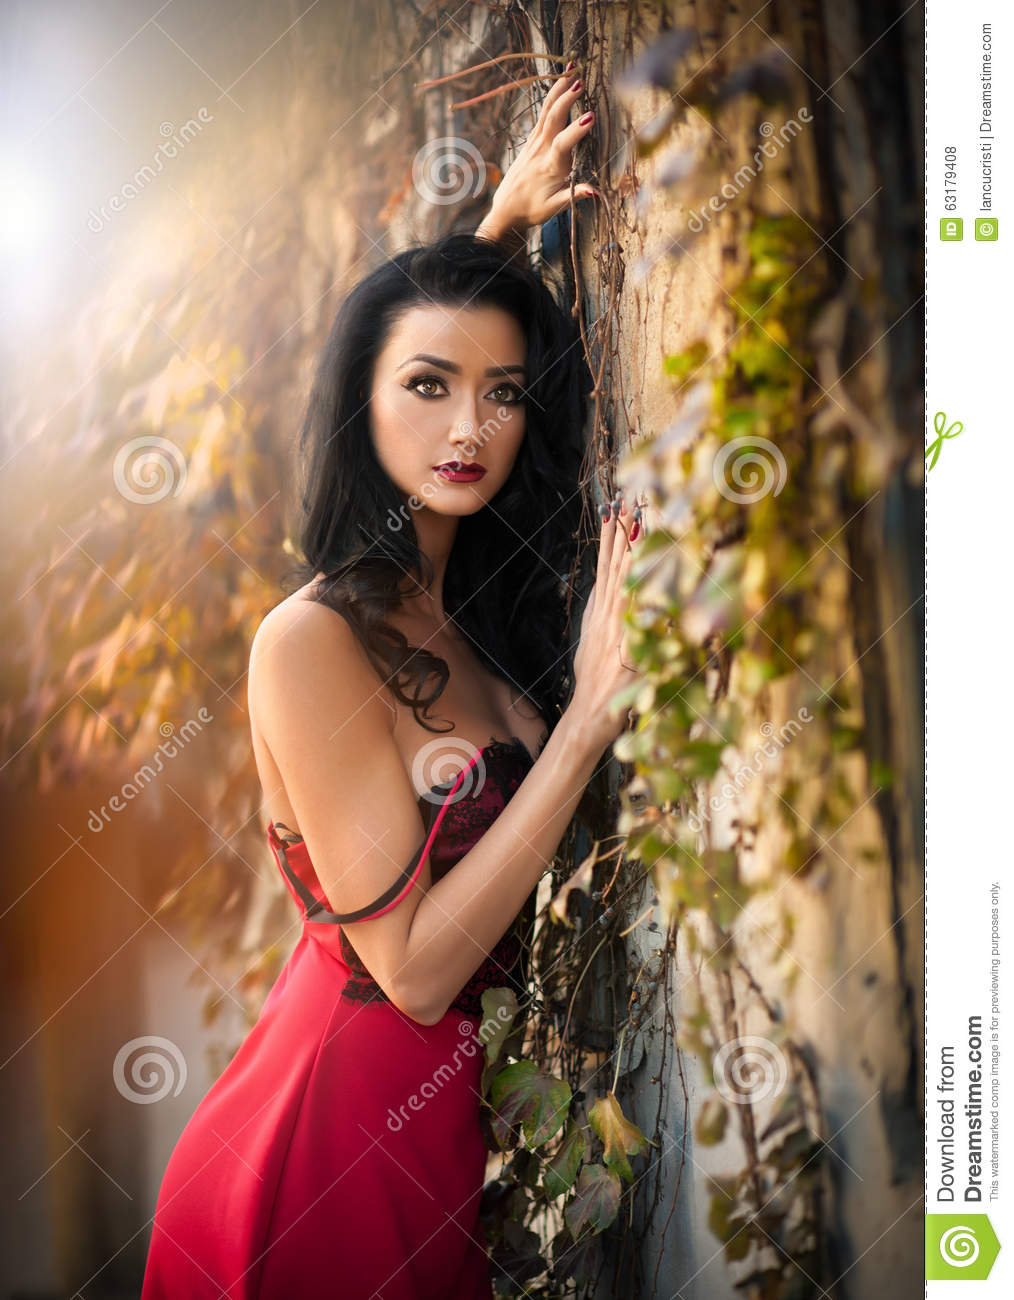 Beautiful Sensuality Teen Girl With Long Hair: Beautiful Sensual Woman In Red Dress Posing In Autumnal